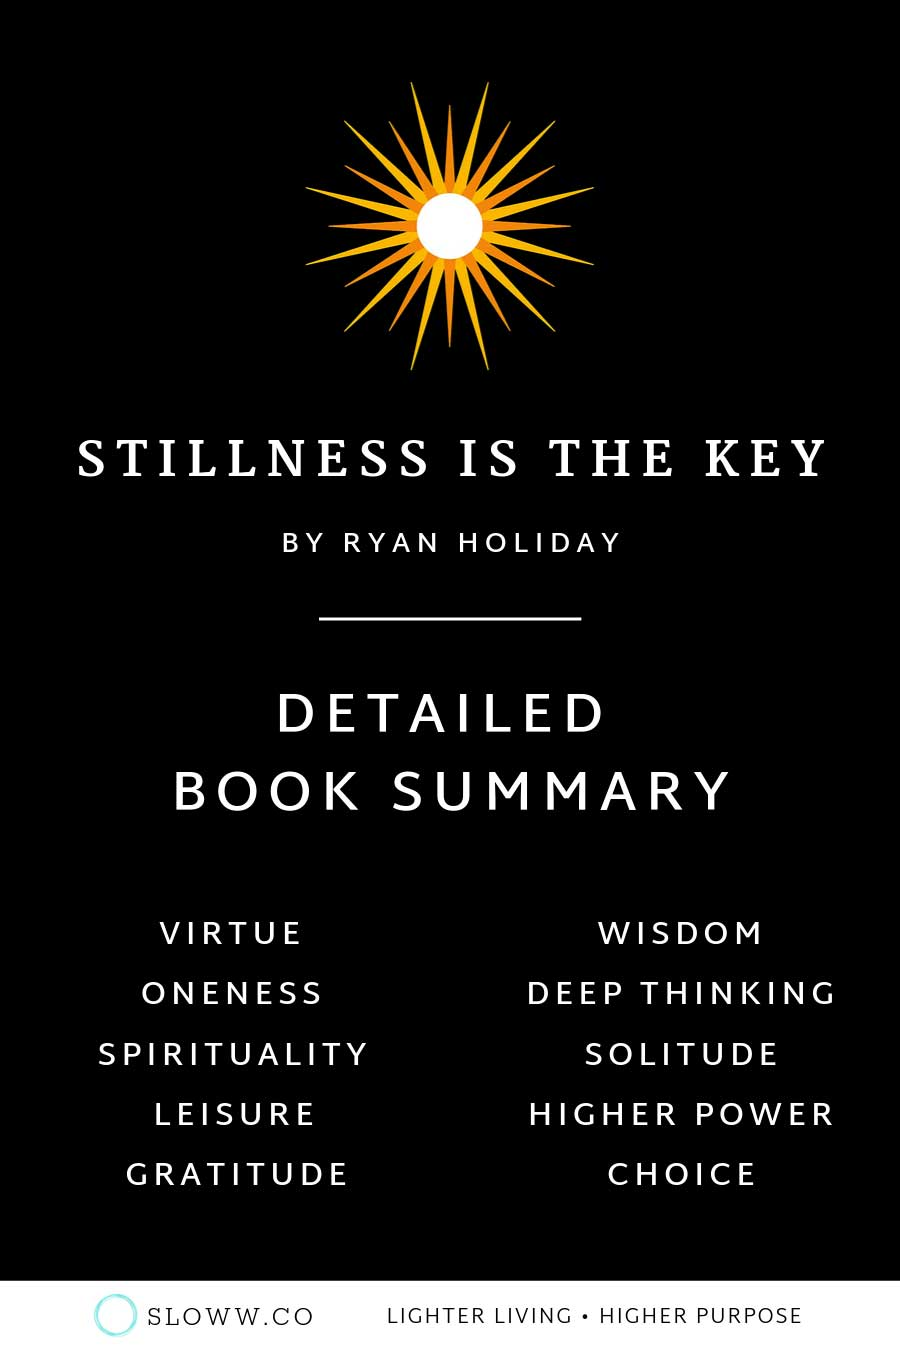 Sloww Stillness is the Key Themes